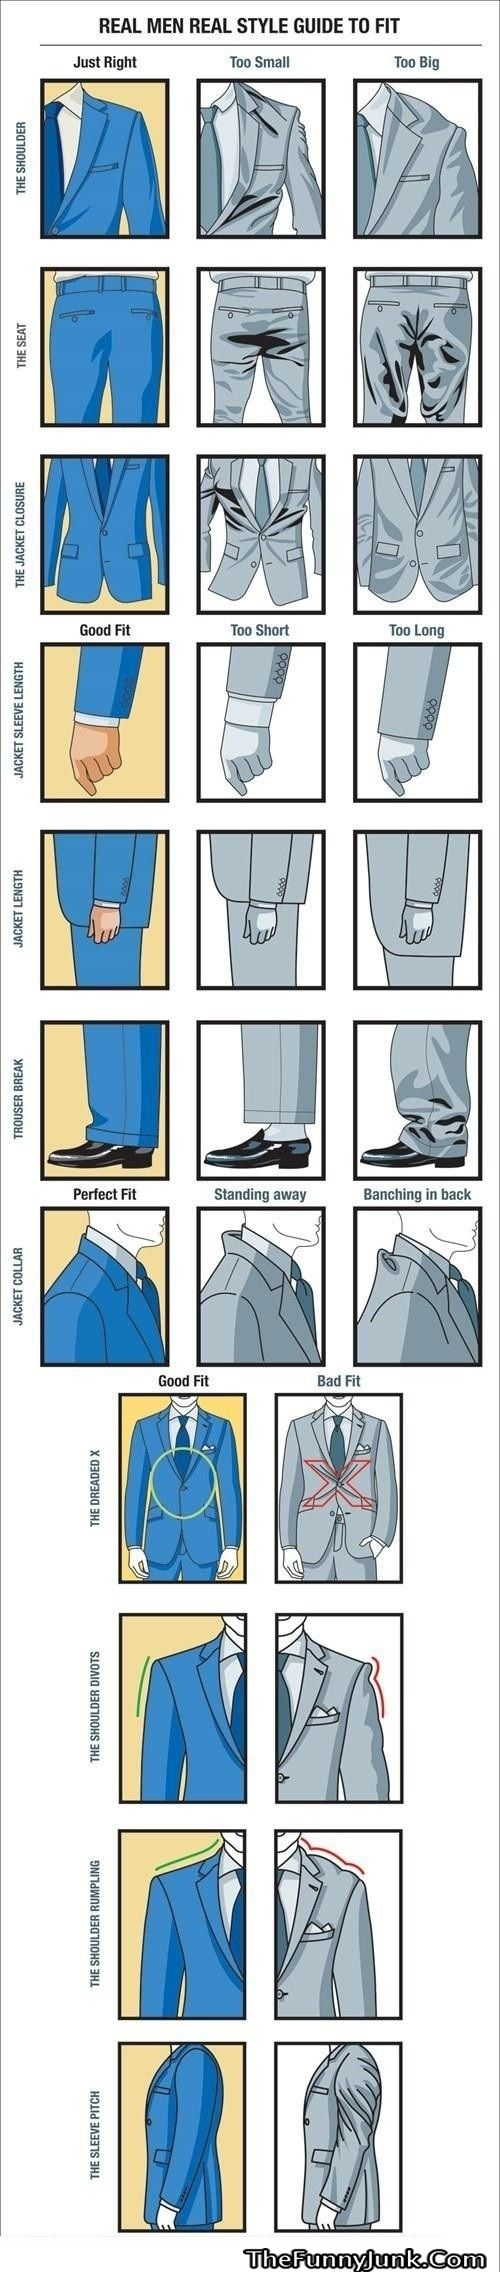 Real Men Real Style Guide To Fit..... Agree ? :) - TheFunnyJunk.com